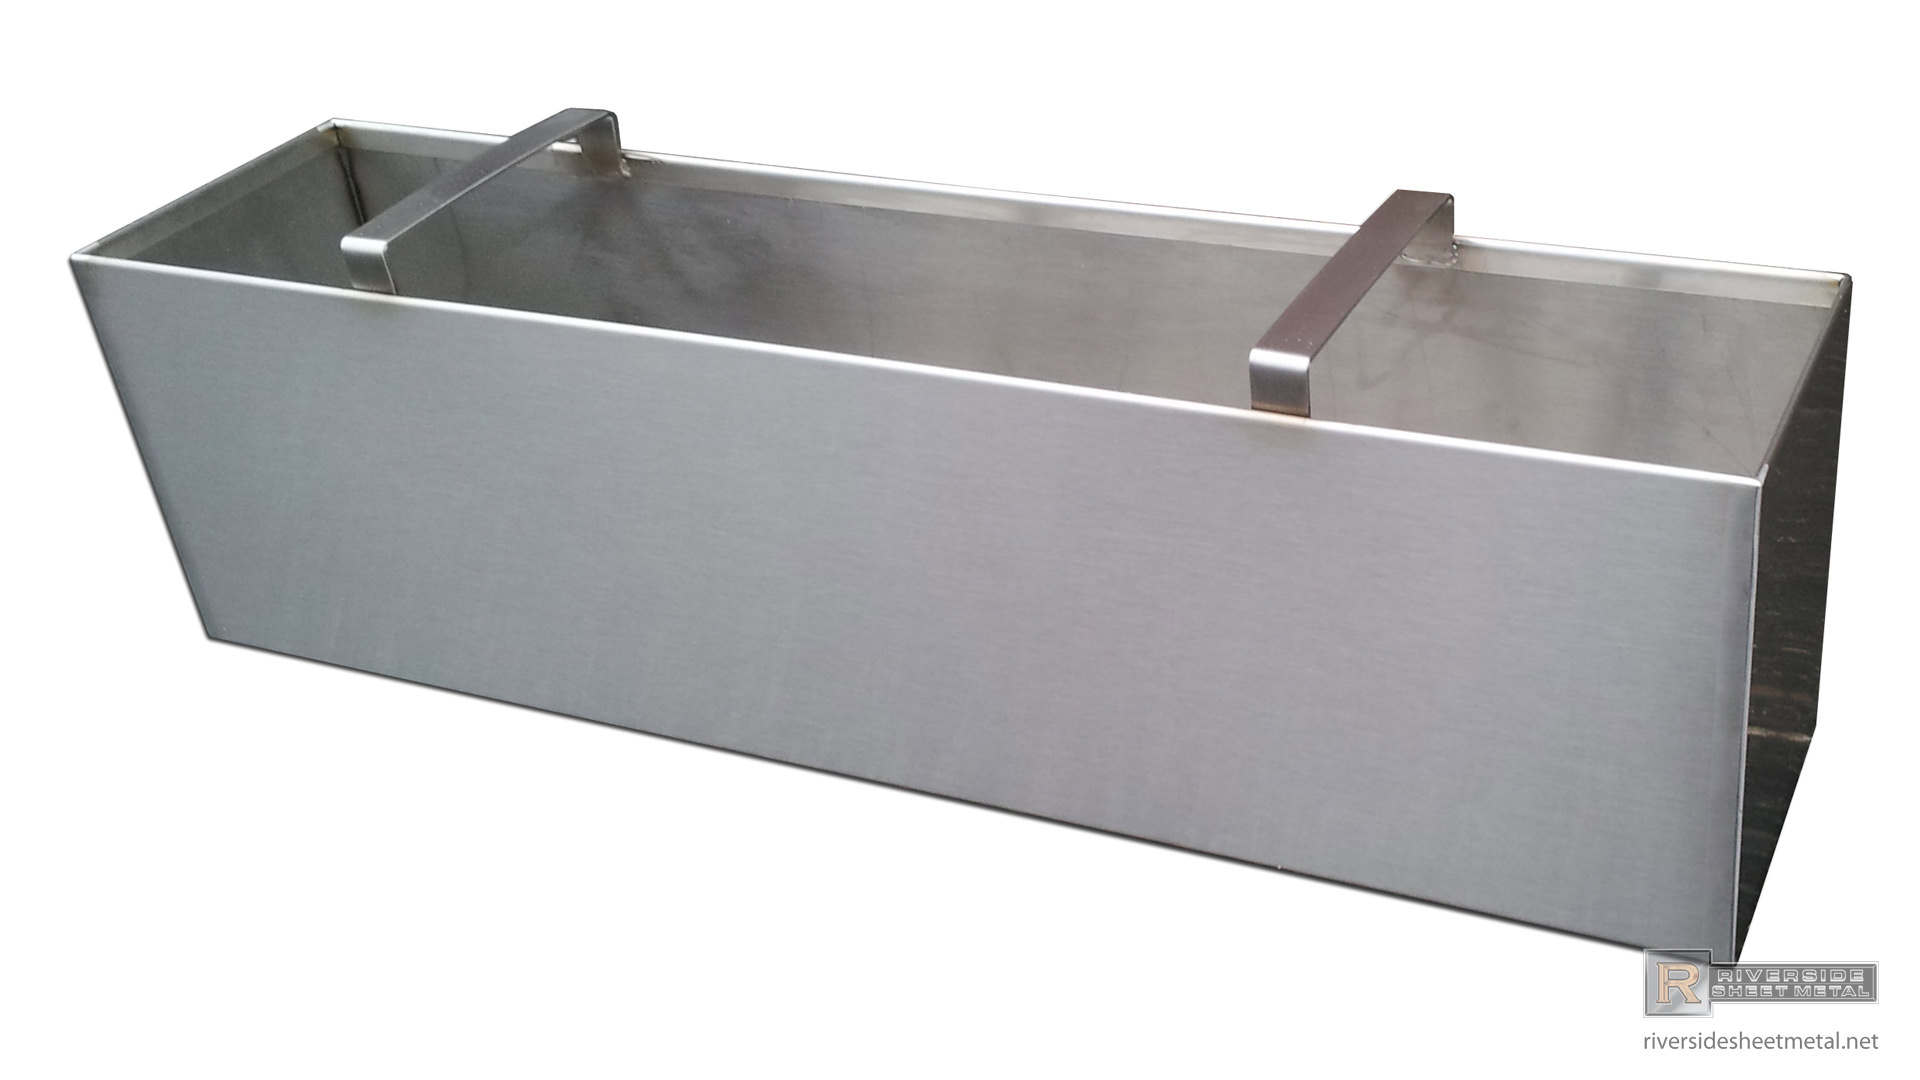 Stainless Steel Number 4 Finish Planter With Handles Riverside